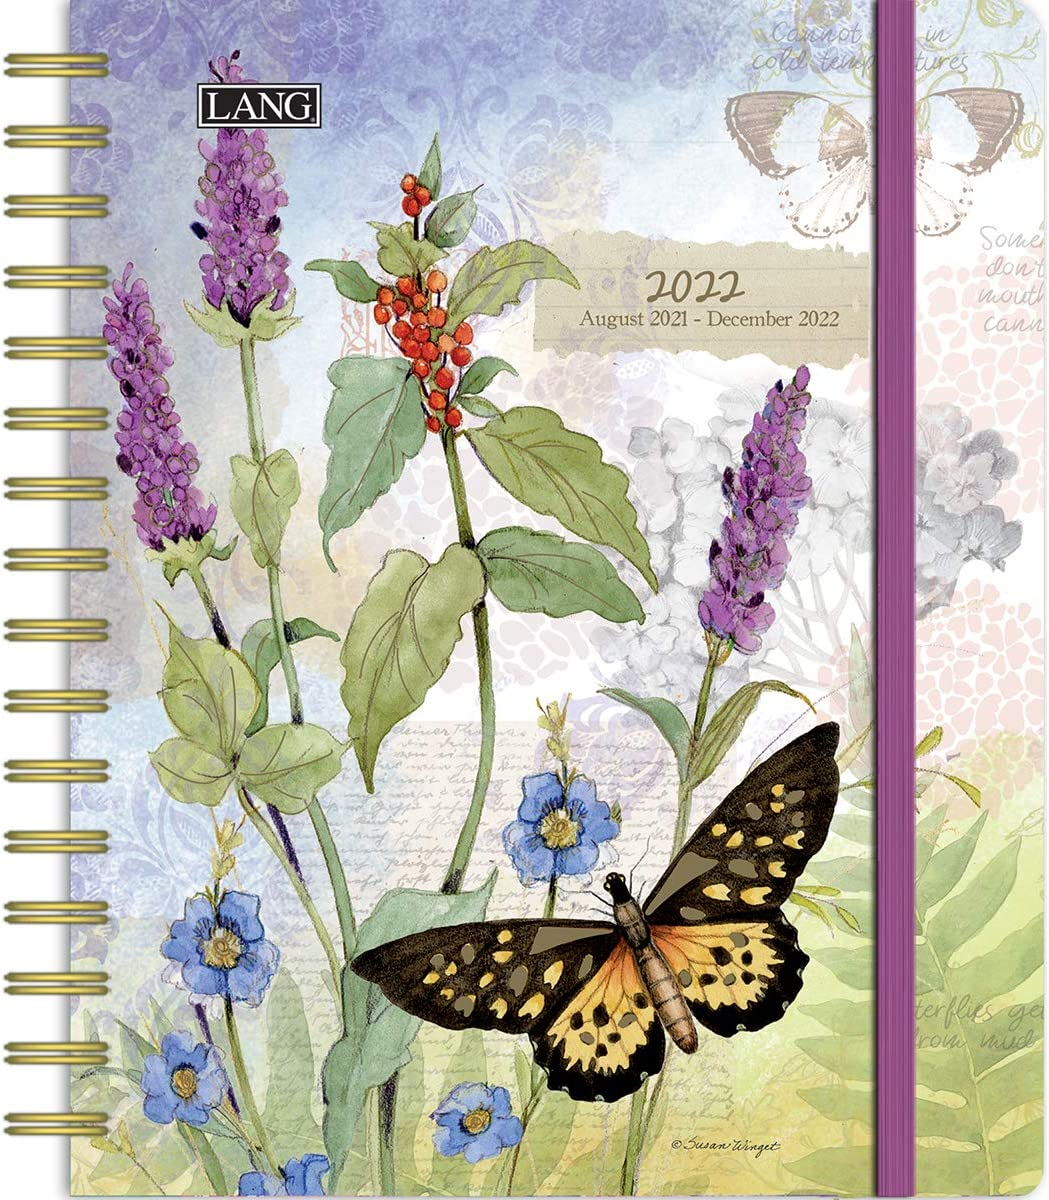 Lang Field Guide 2022 22991038103 Deluxe 5 Mail order ☆ popular Planner